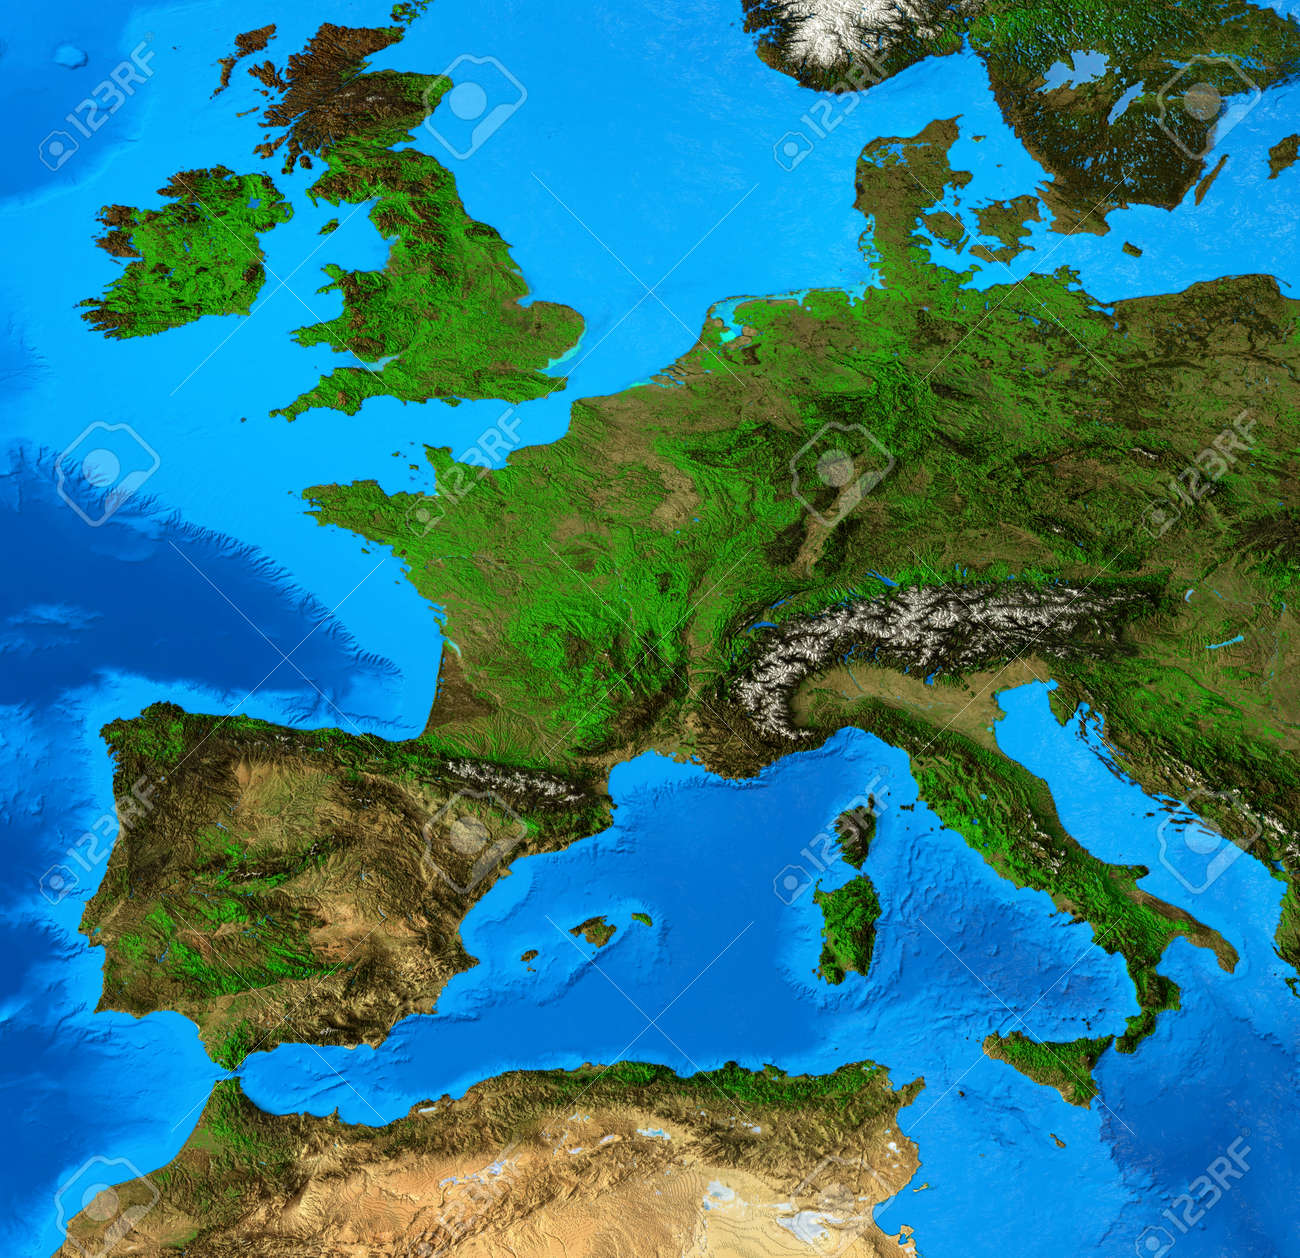 Geographical map of Western Europe, centered on France. Detailed flat view of the Planet Earth and its landforms. 3D illustration - 164461755